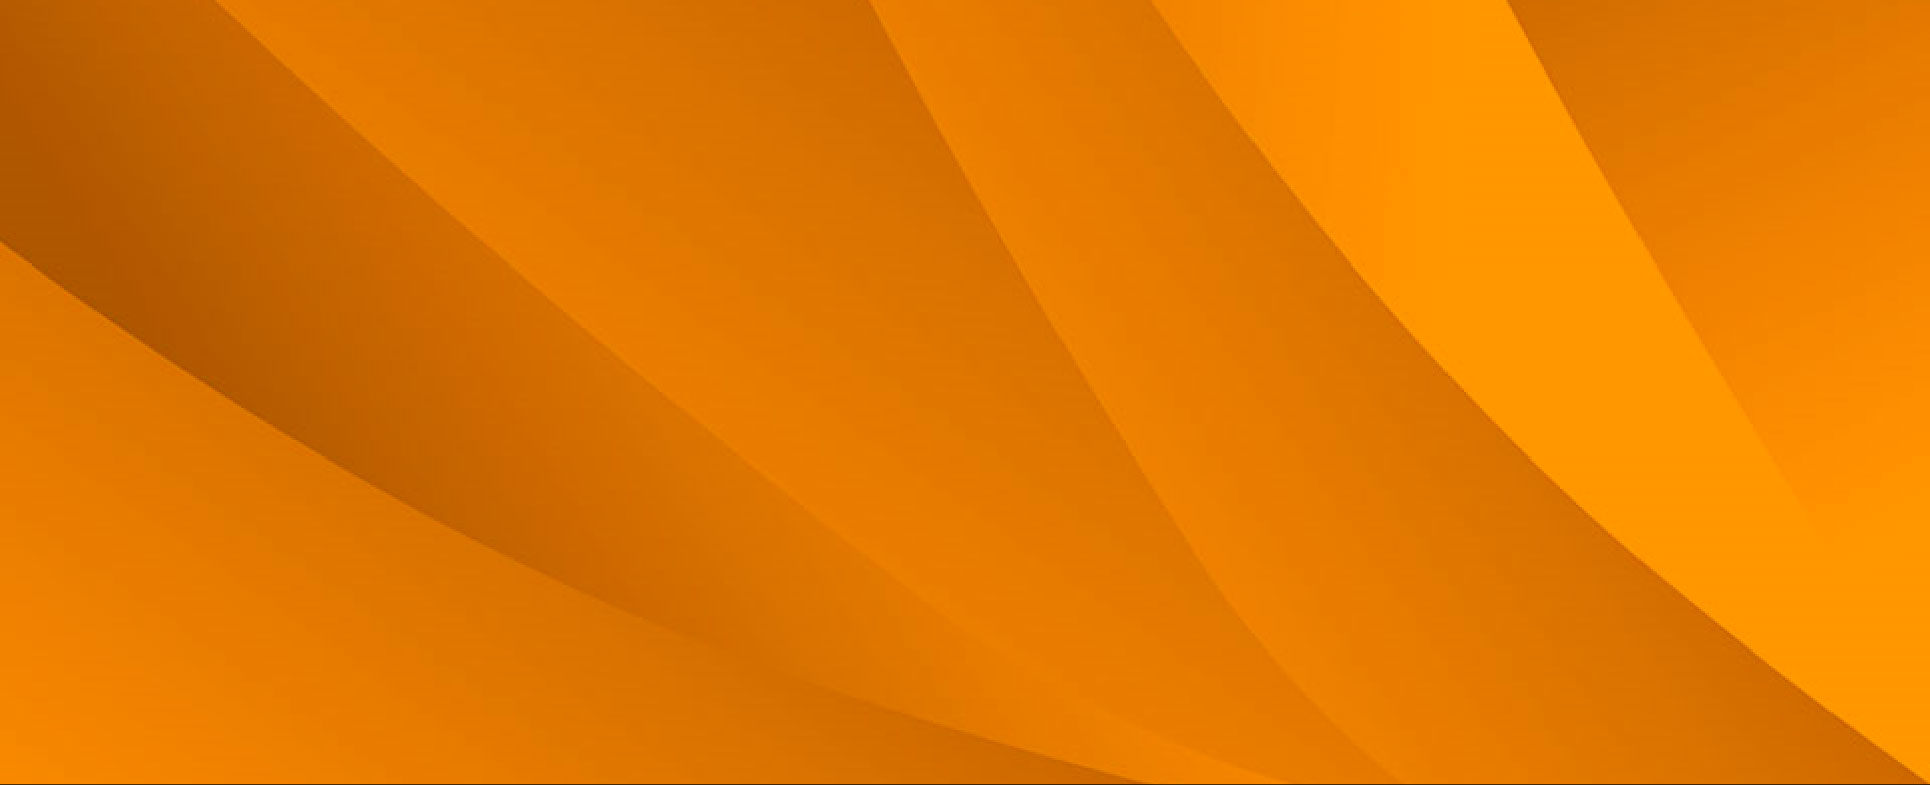 background_orange_abstract_01